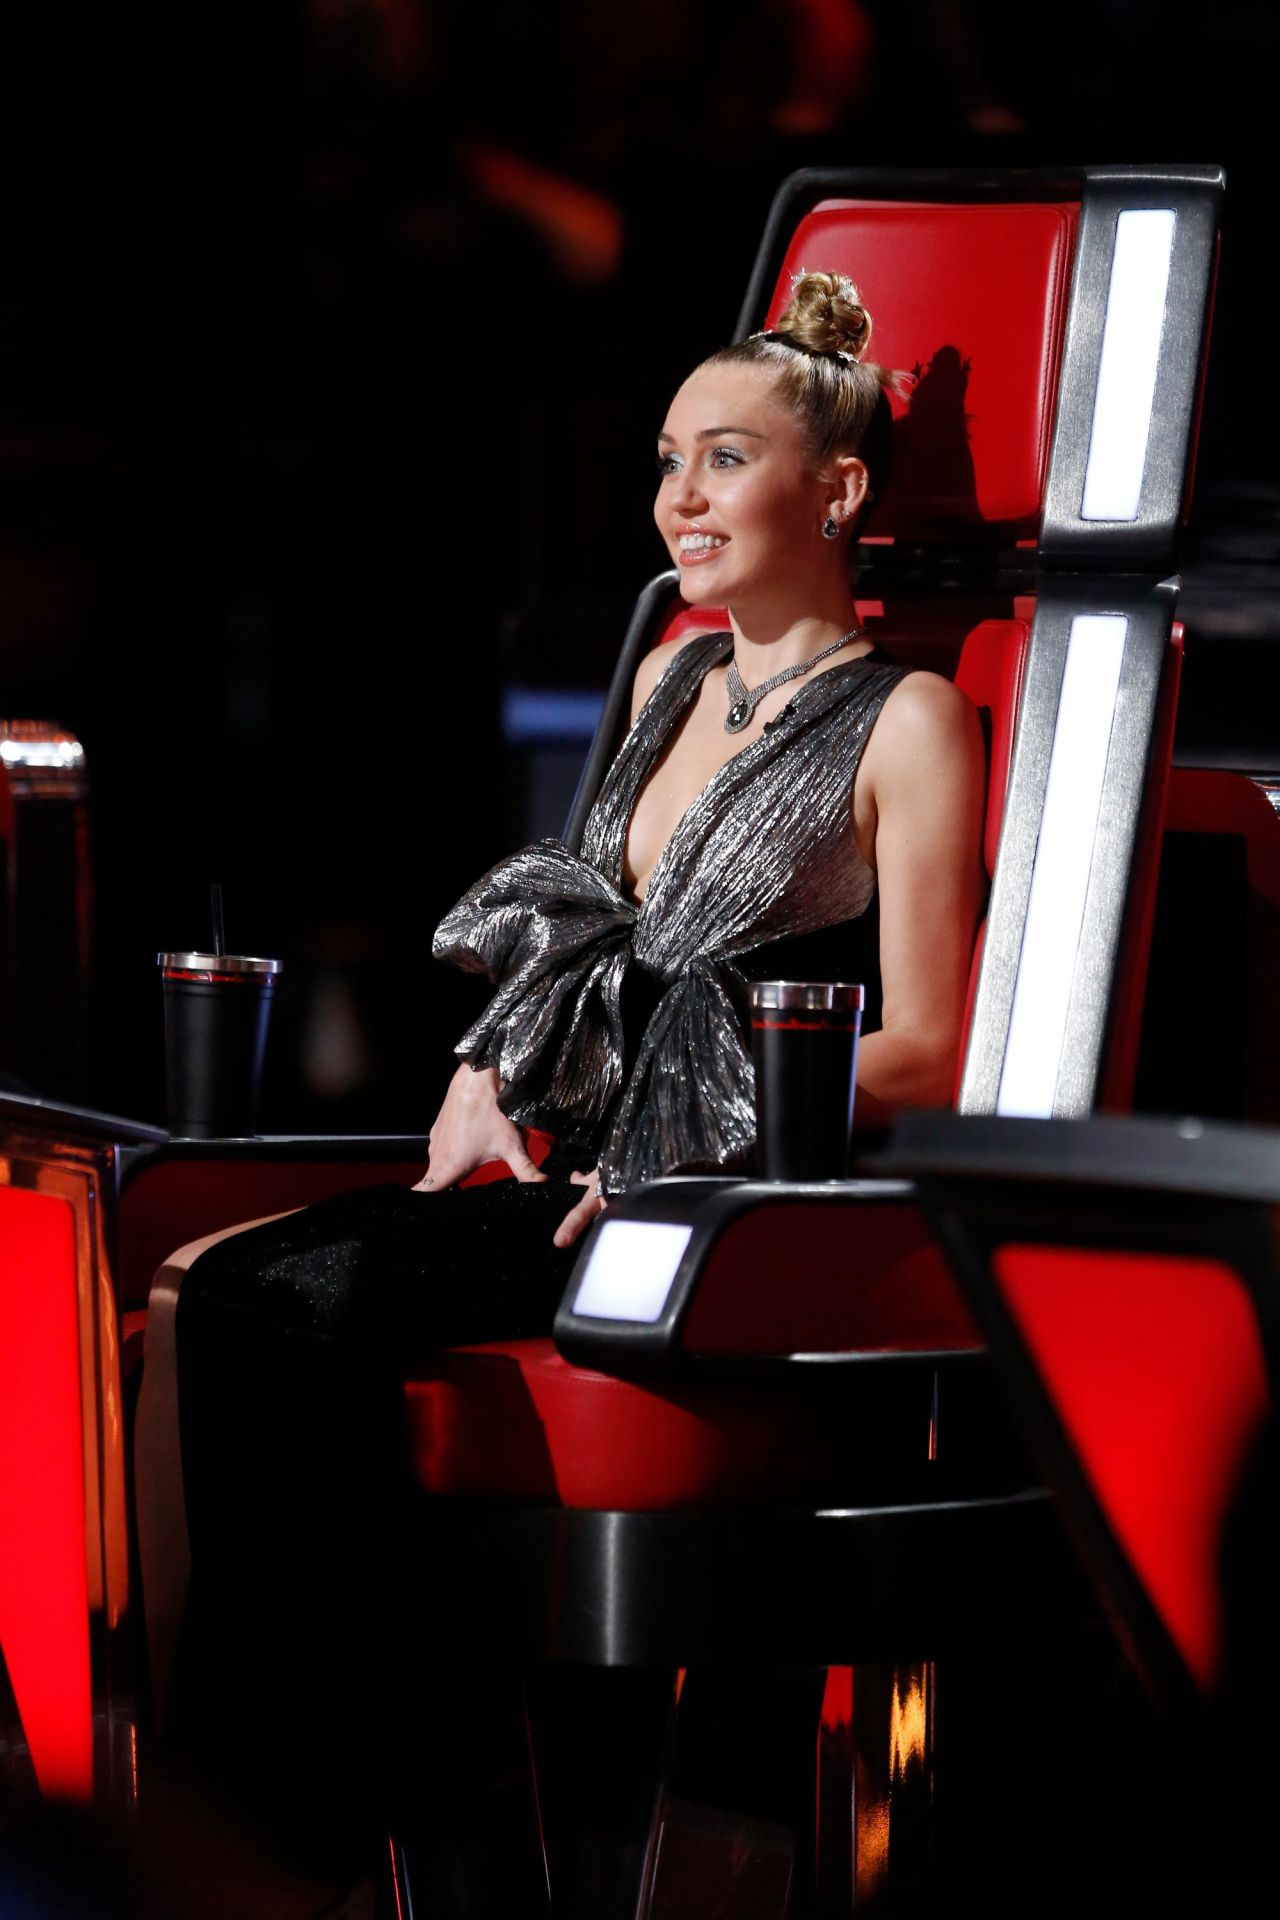 The Voice Within The Cards: The Voice Season 13 Live Show